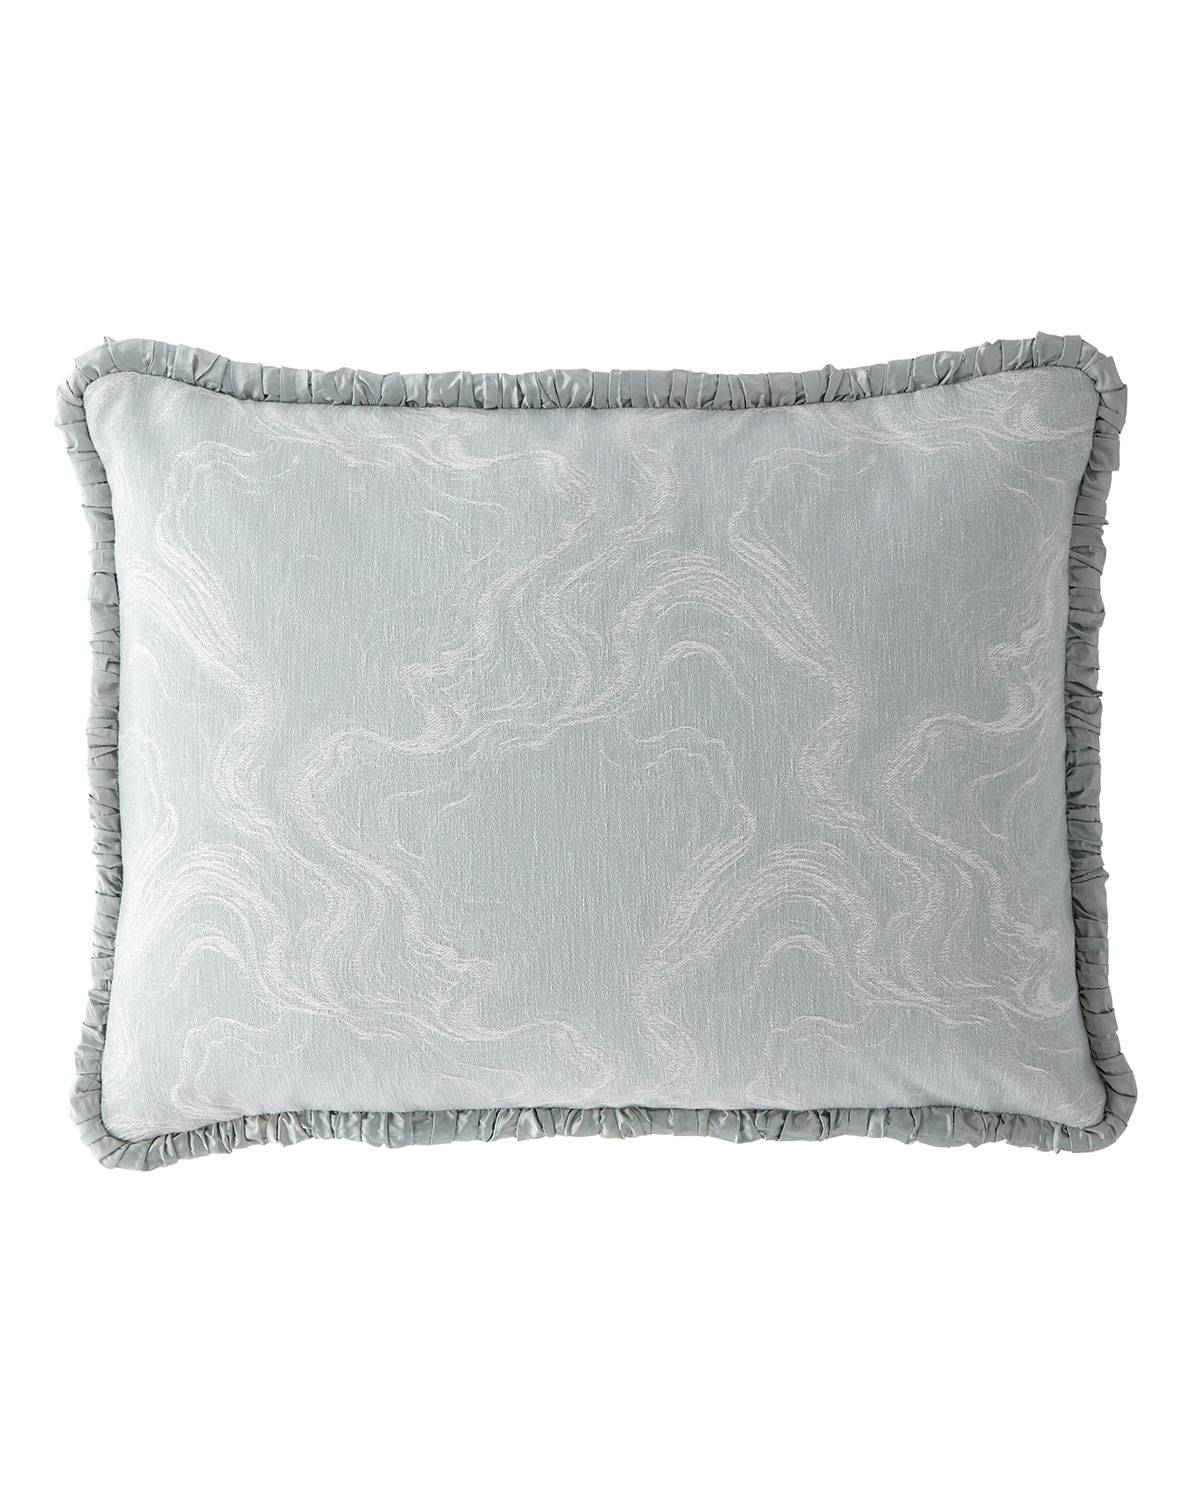 Dian Austin Couture Home Quartzite Standard Sham with Silk Piping